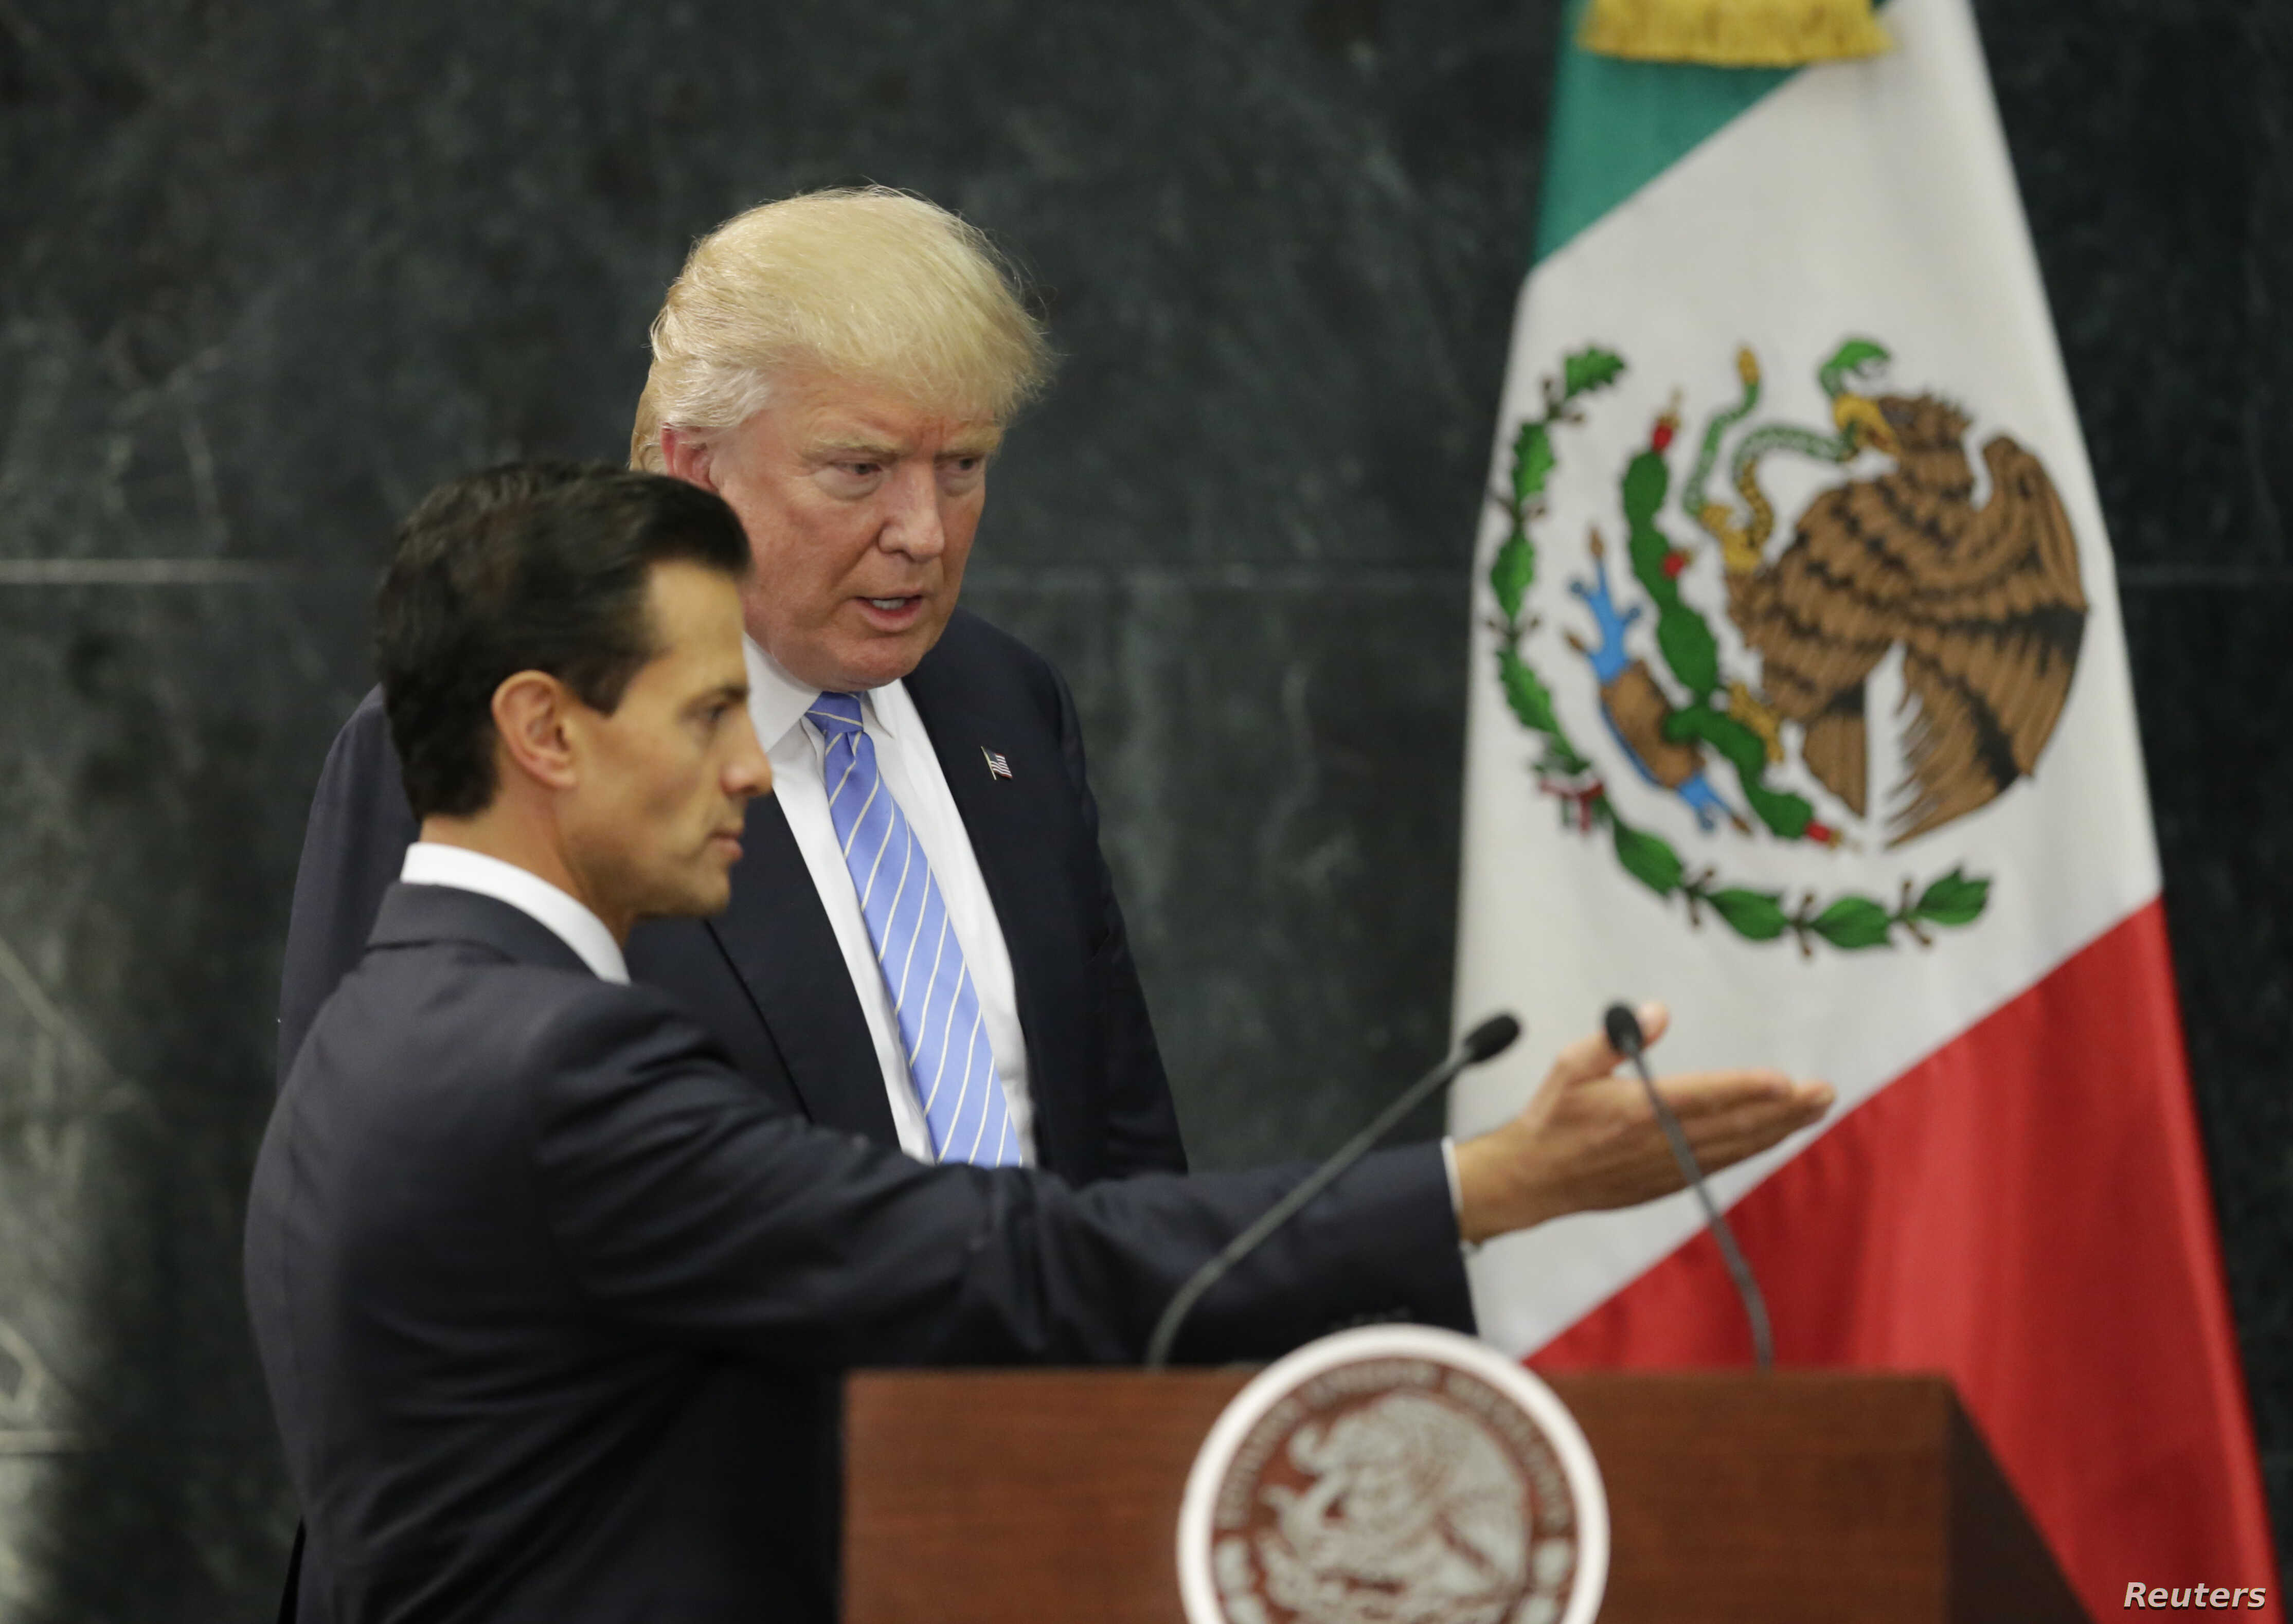 U.S. Republican presidential nominee Donald Trump and Mexico's President Enrique Pena Nieto arrive for a press conference at the Los Pinos residence in Mexico City, Mexico, Aug. 31, 2016.